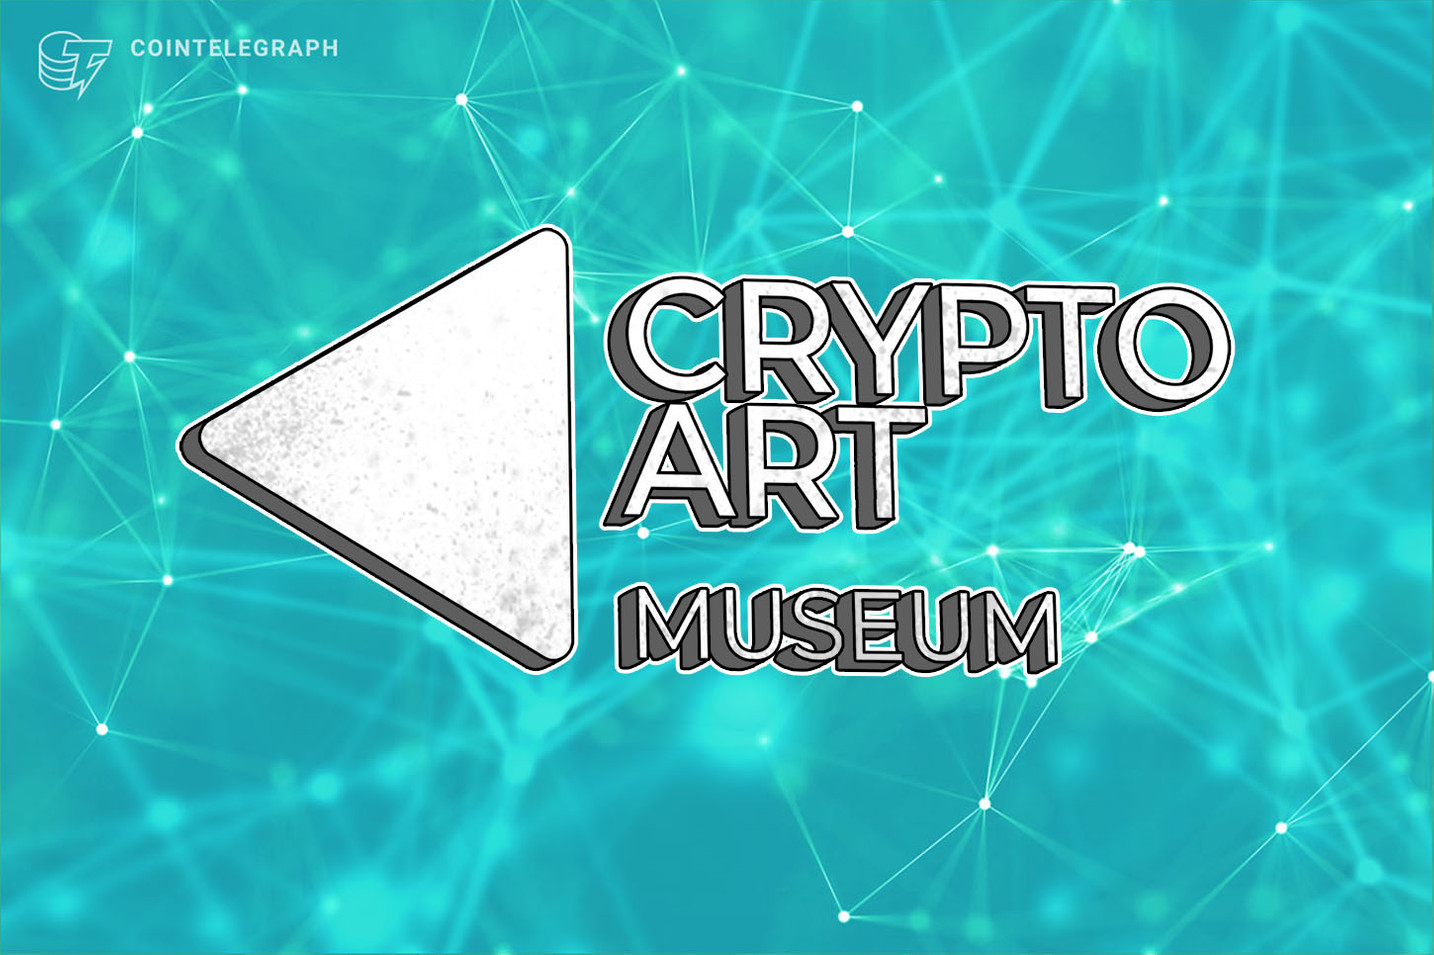 CryptoArt Museum presents the results of the first art residence for crypto artists